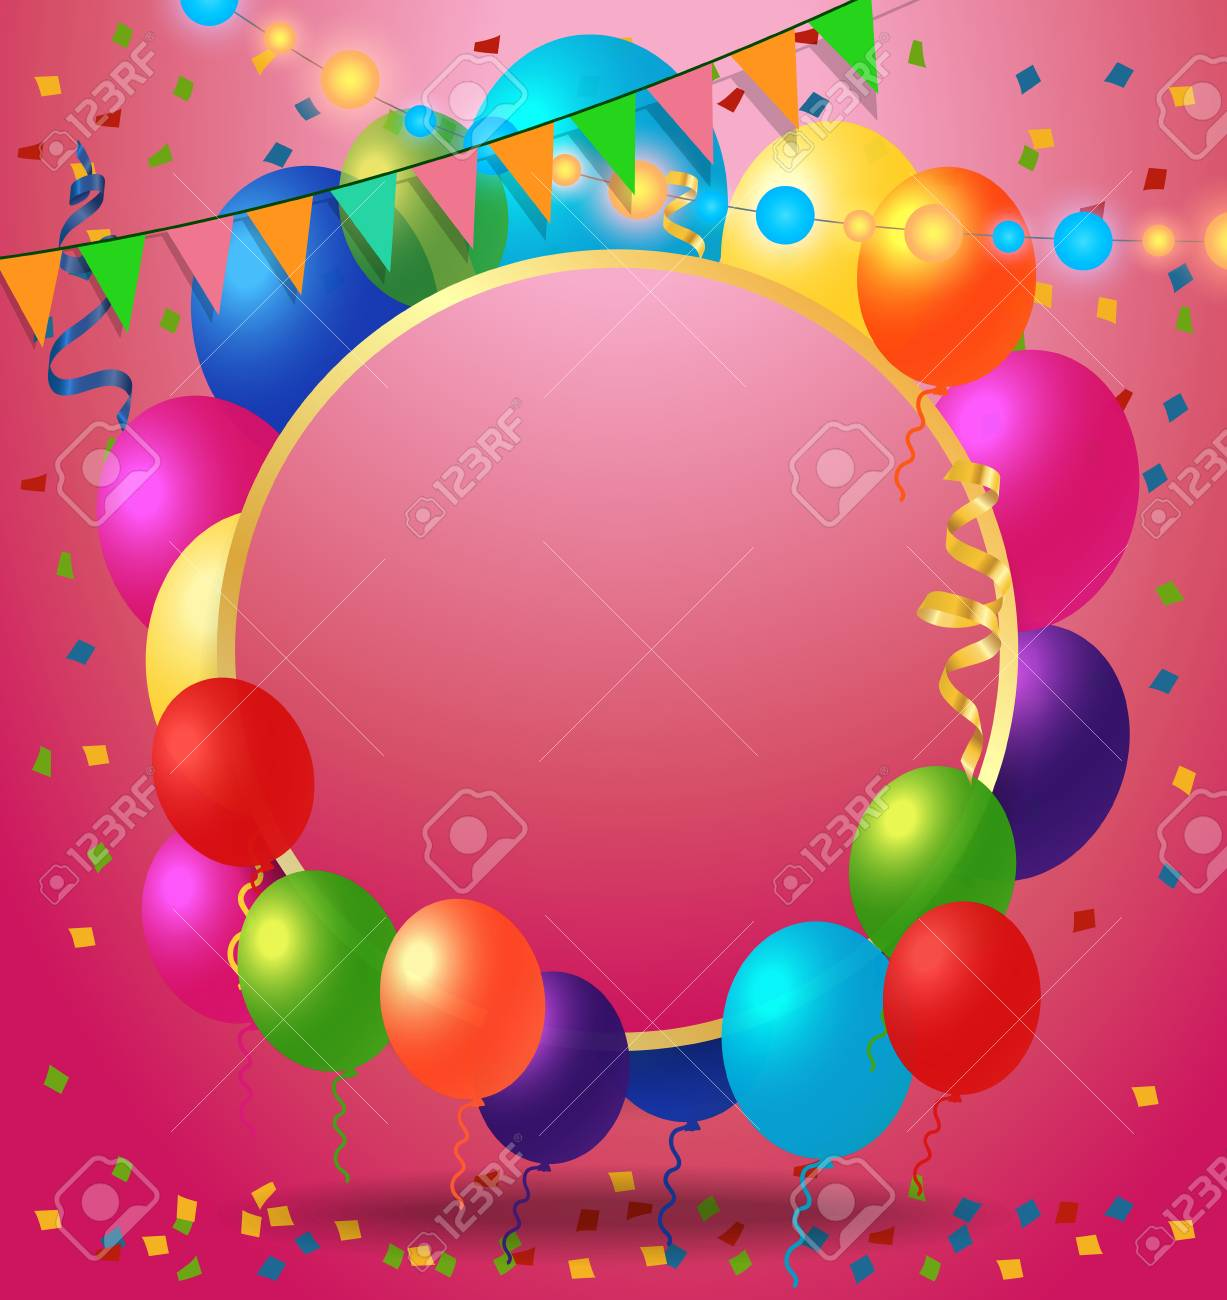 Blank greeting card with round frame balloons and garland for blank greeting card with round frame balloons and garland for greeting cards posters m4hsunfo